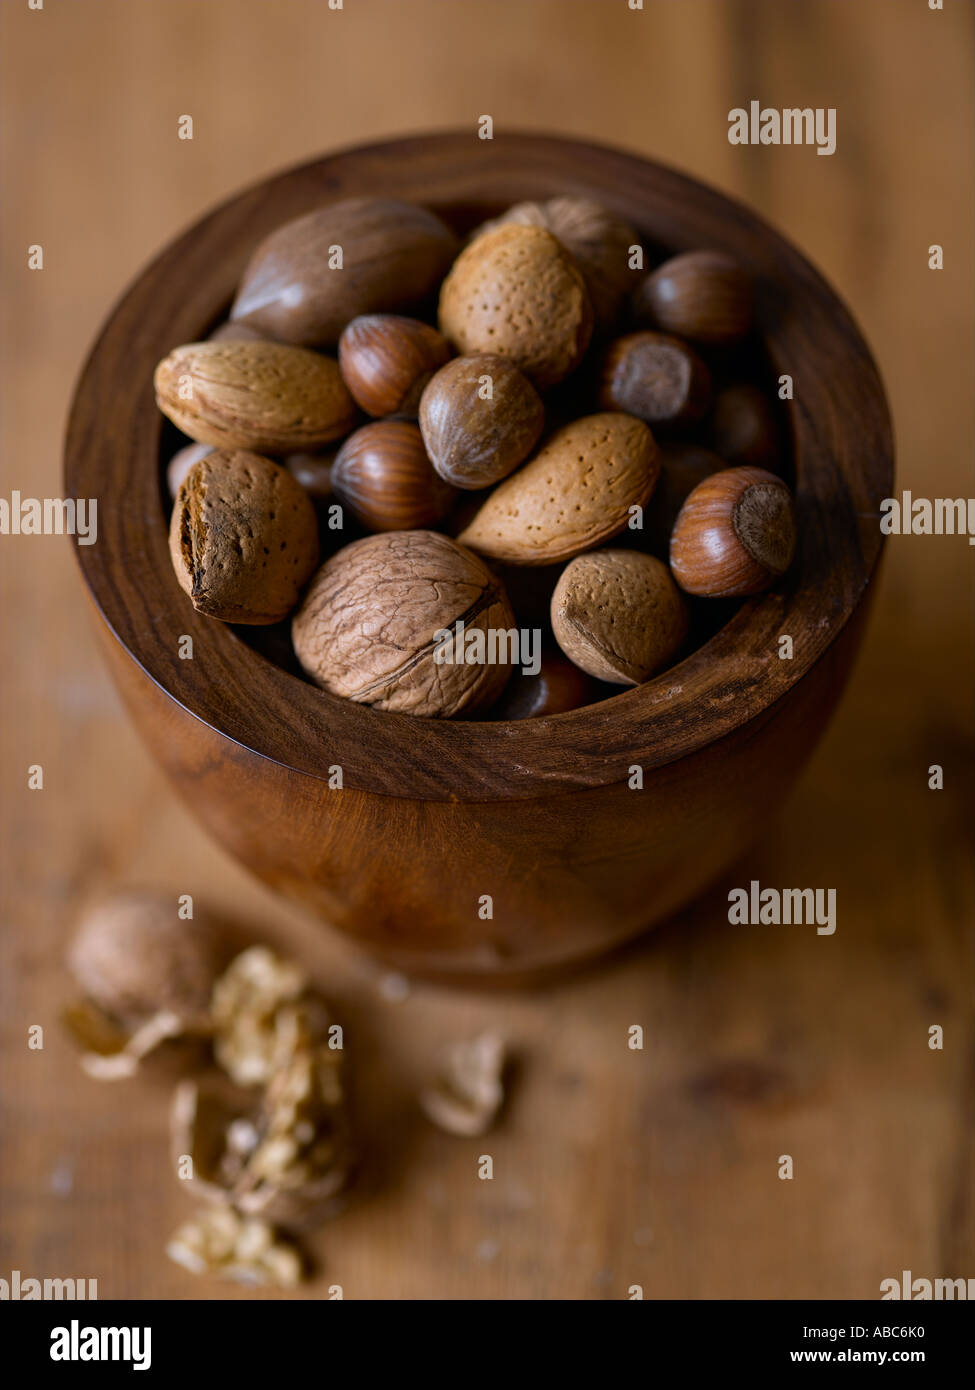 Mixed nuts in wooden bowl - high end Hasselblad 61mb digital image - Stock Image